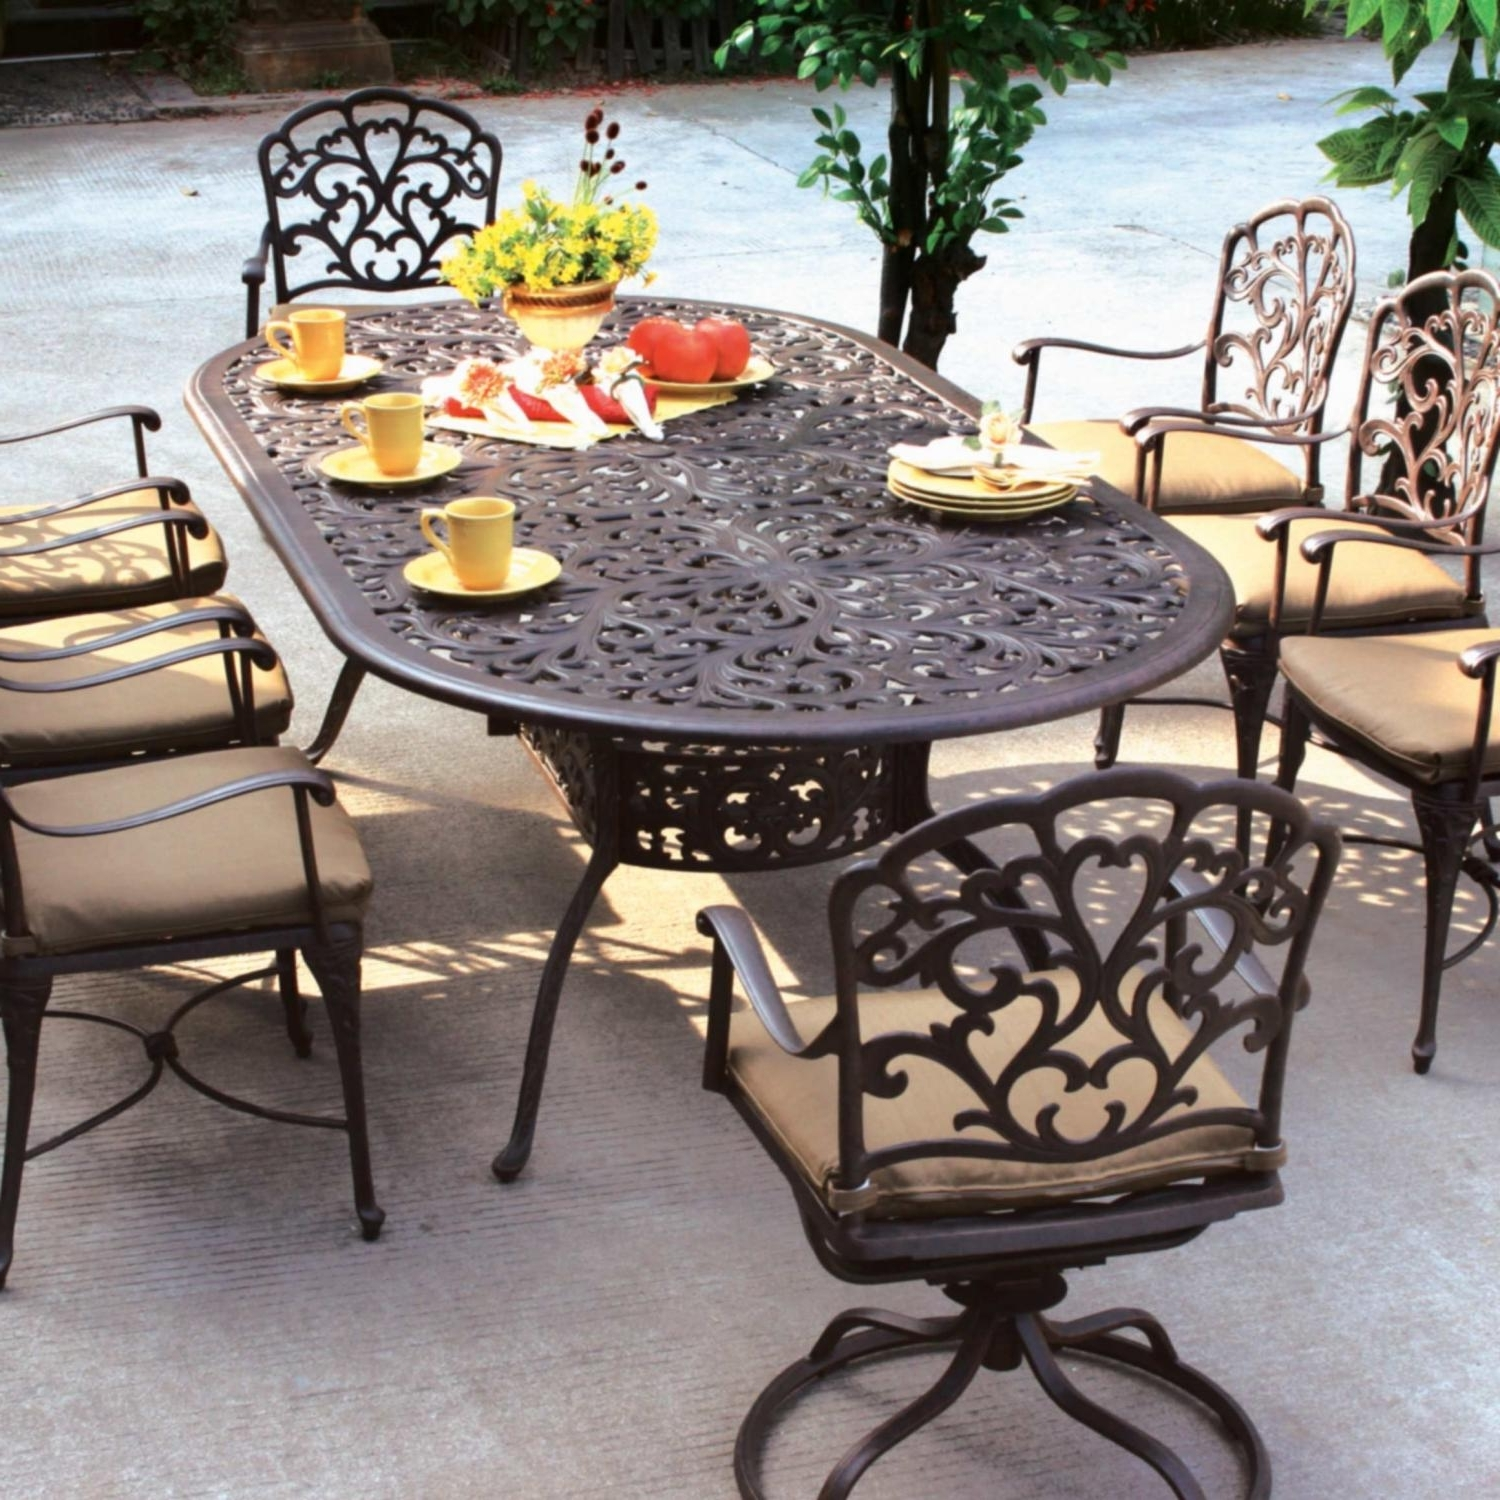 2018 Patio Dining Table And Chairs Costco Patio Furniture For Padded In Outdoor Dining Table And Chairs Sets (View 1 of 25)